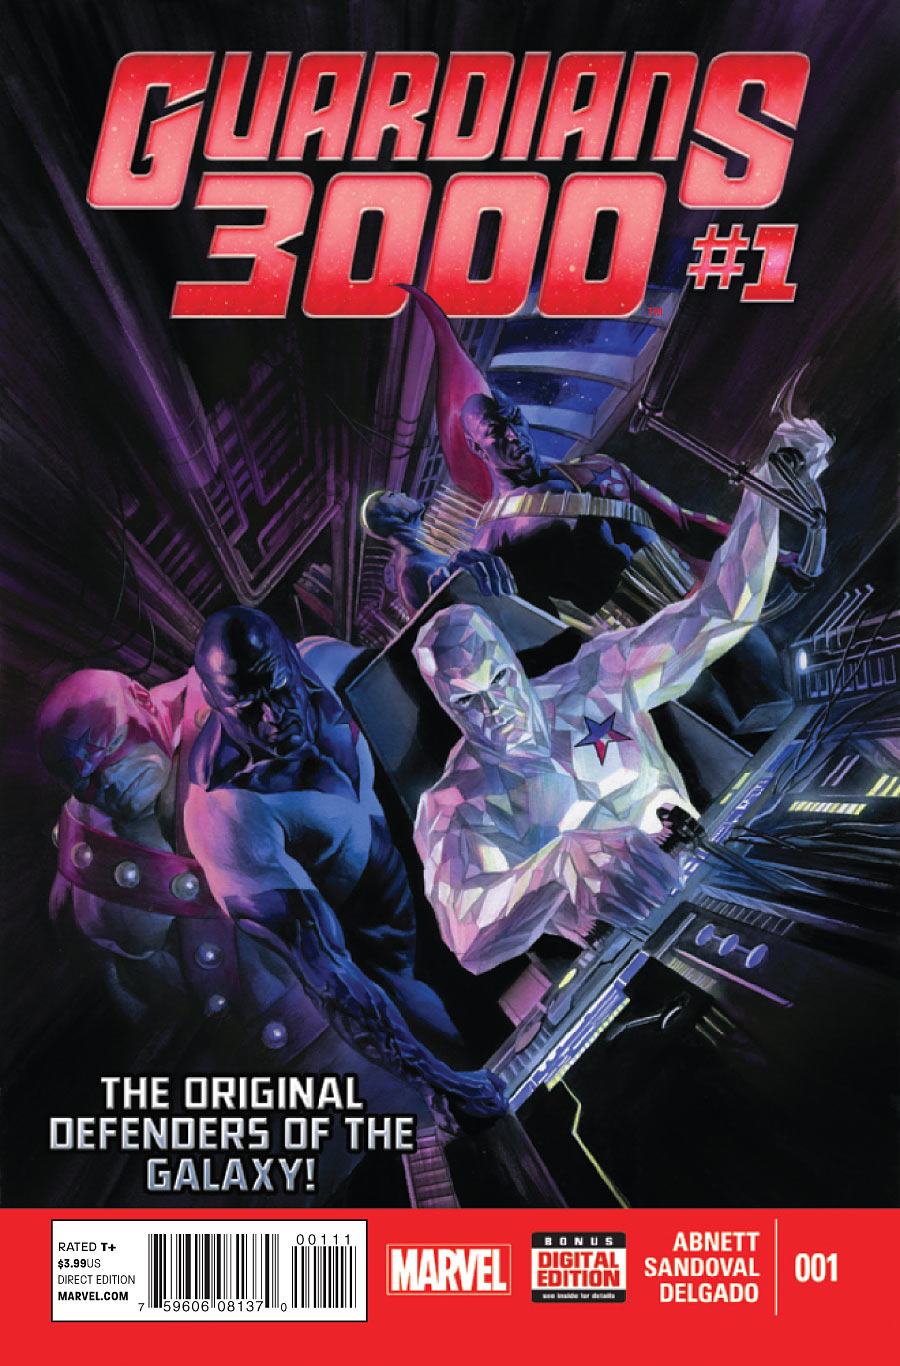 Guardians 3000 Vol 1 1